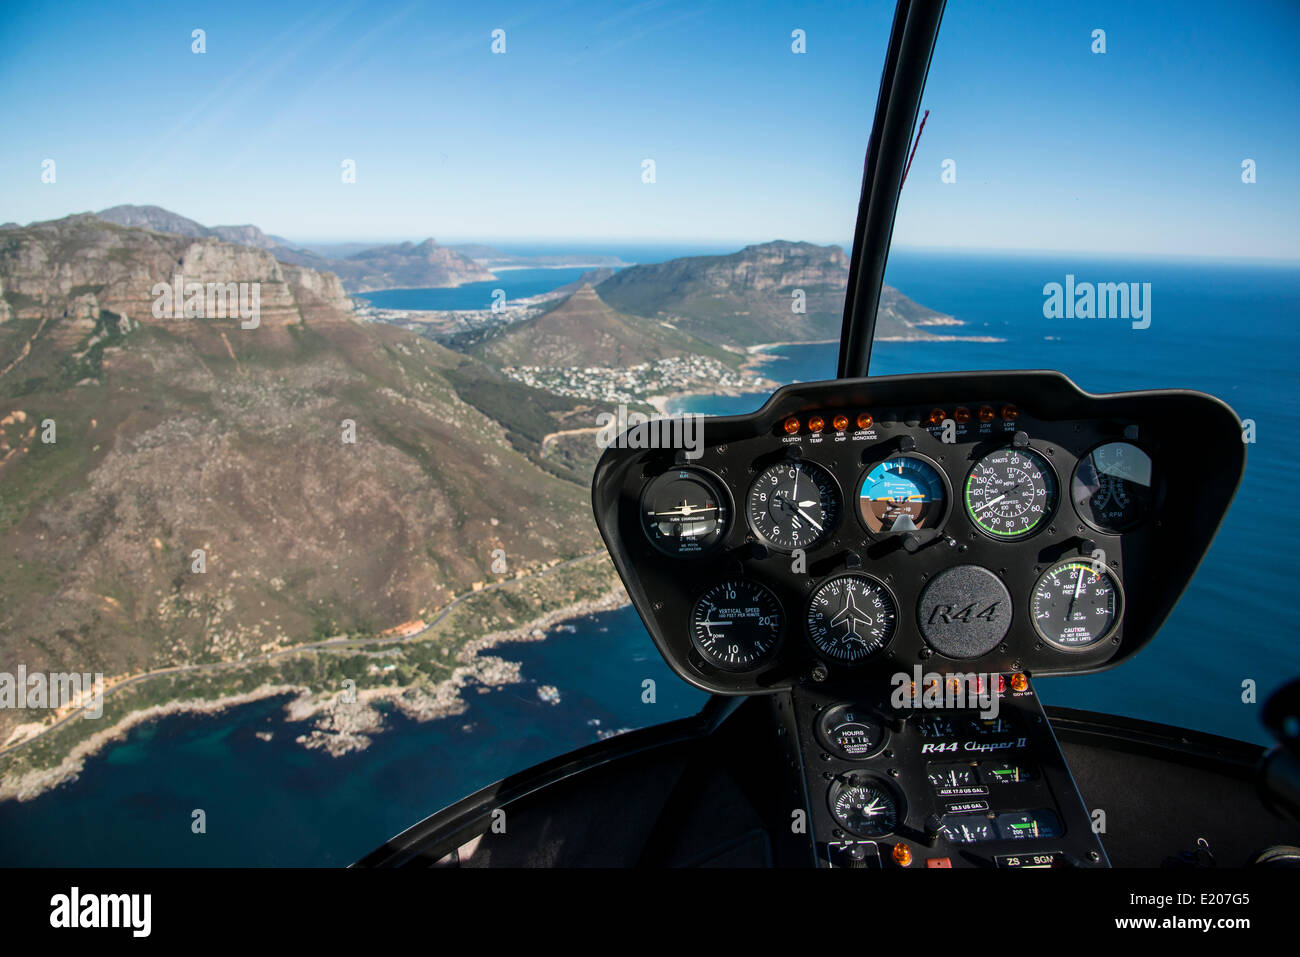 Aerial view, Clipper R44 helicopter dashboard controls over Cape Town, Western Cape, South Africa - Stock Image